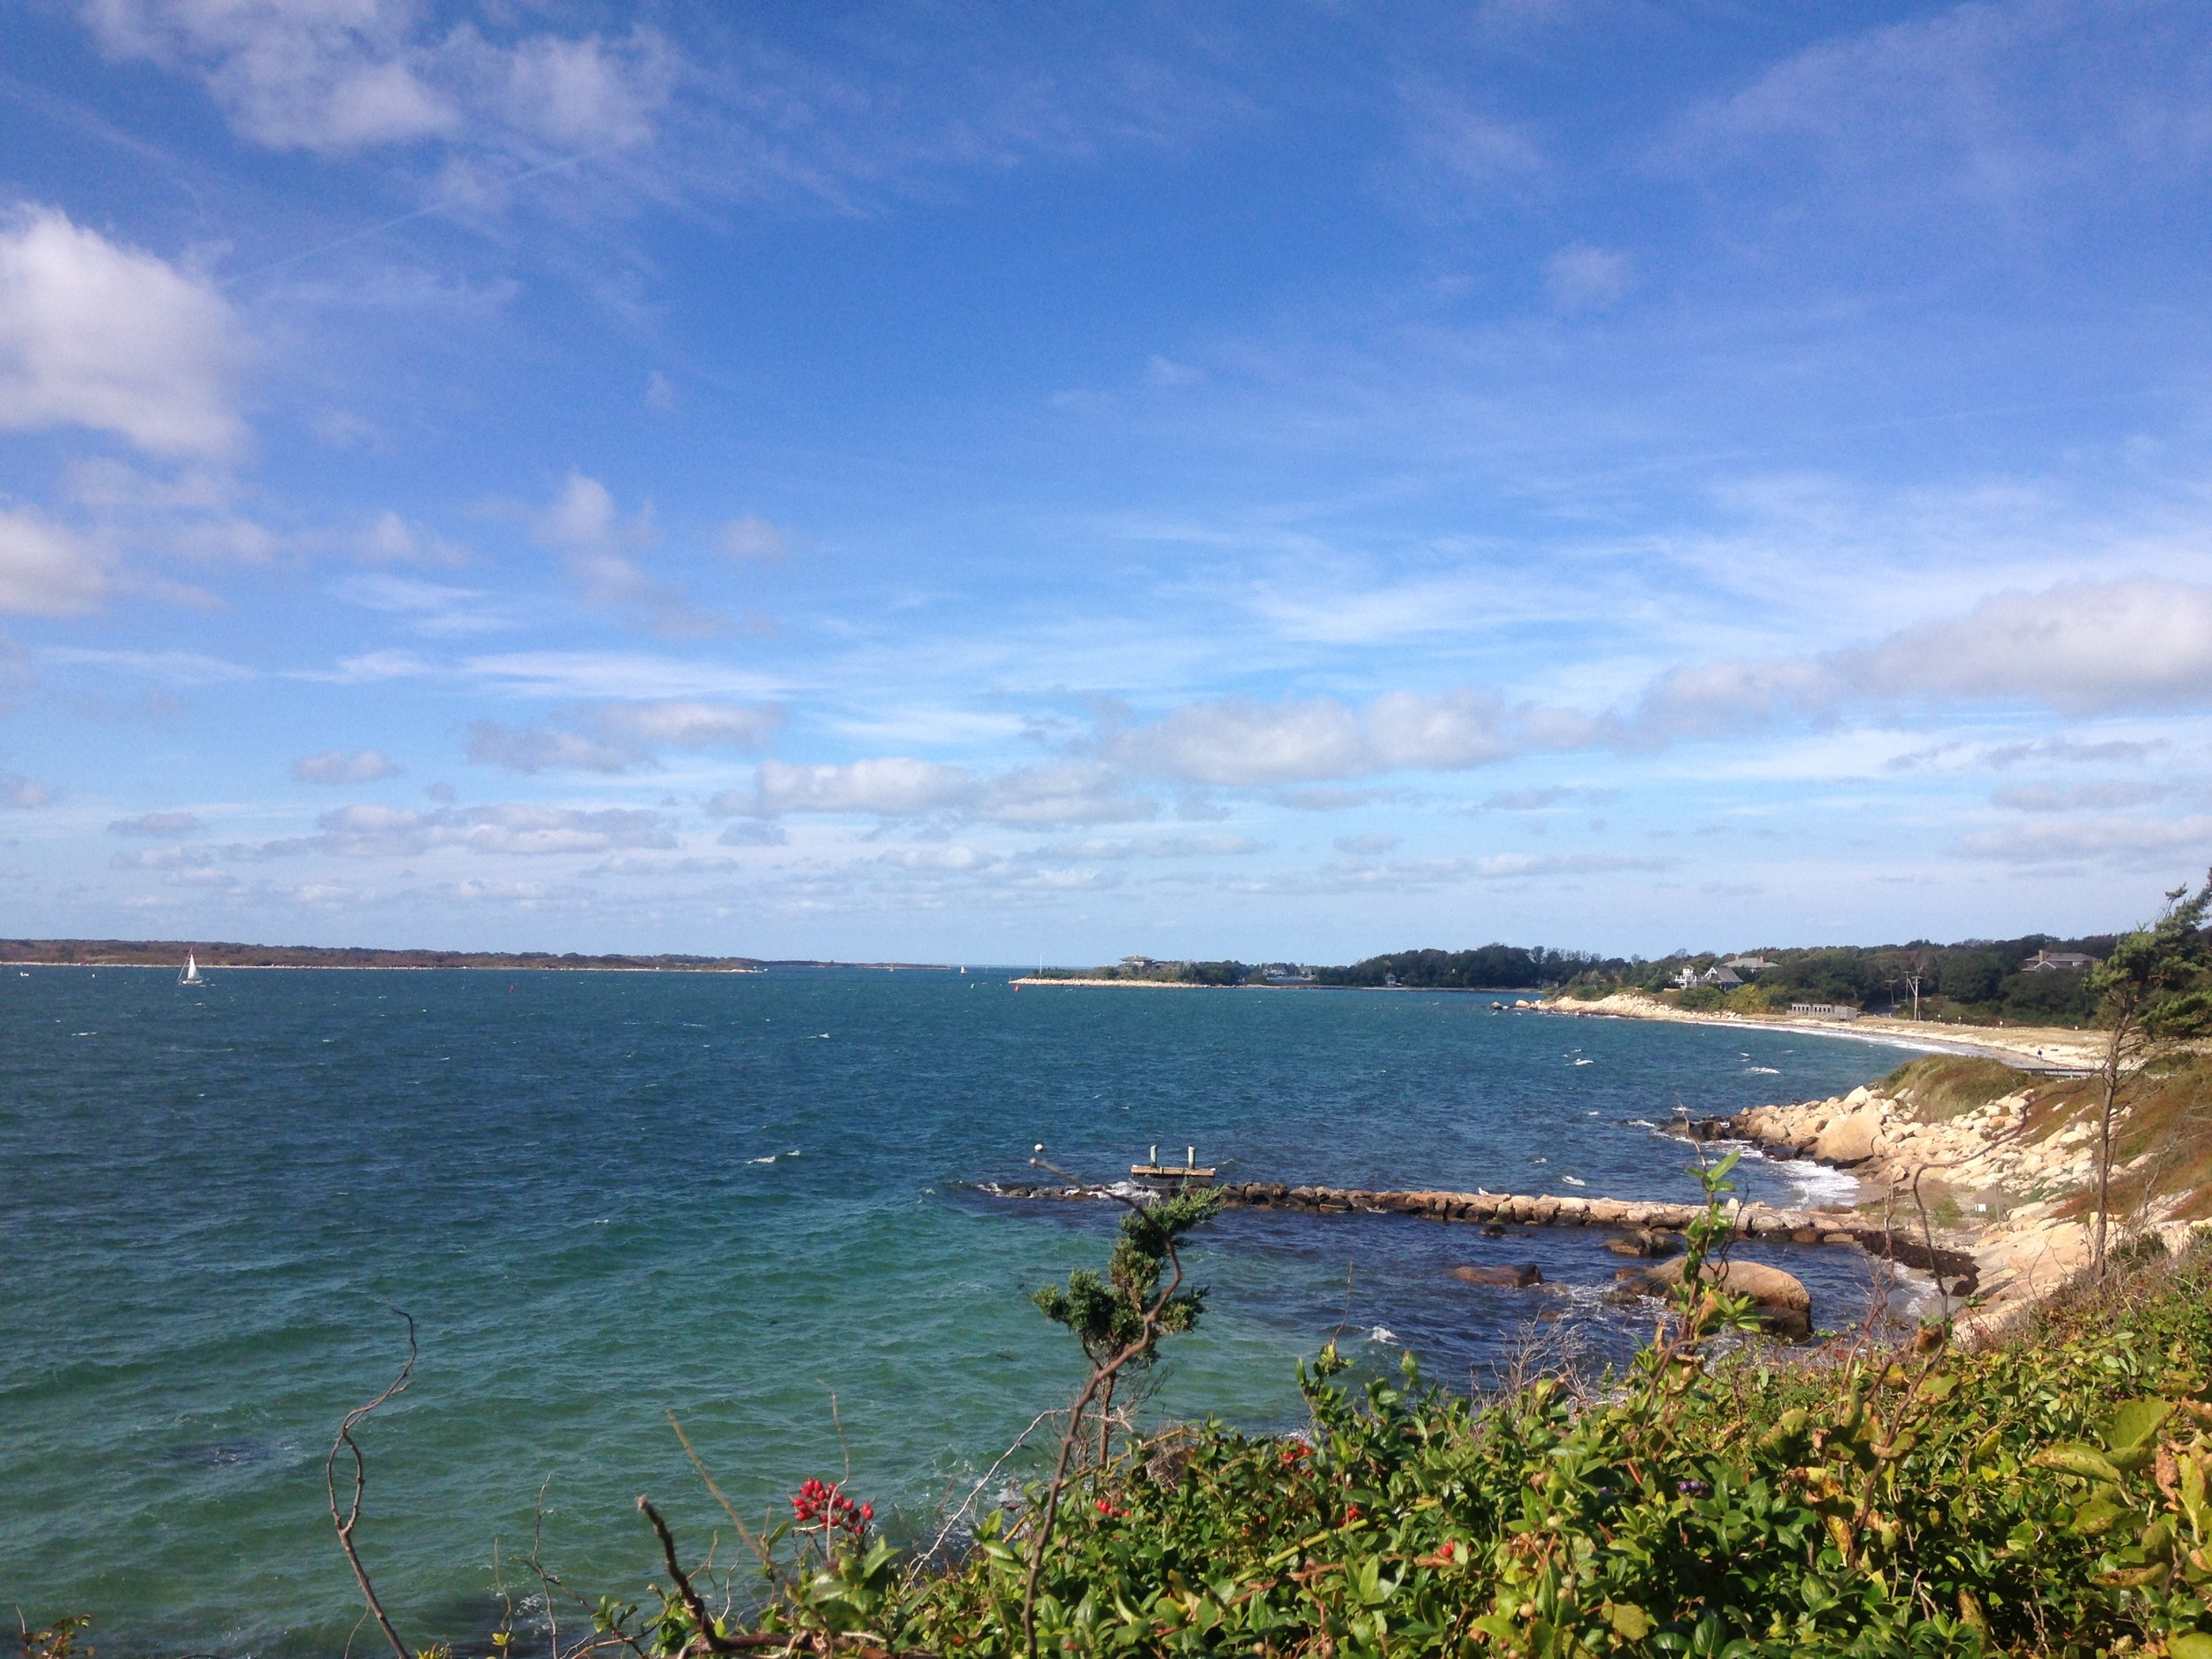 View from Cape Cod and the islands. Photo by Virginia Lora.